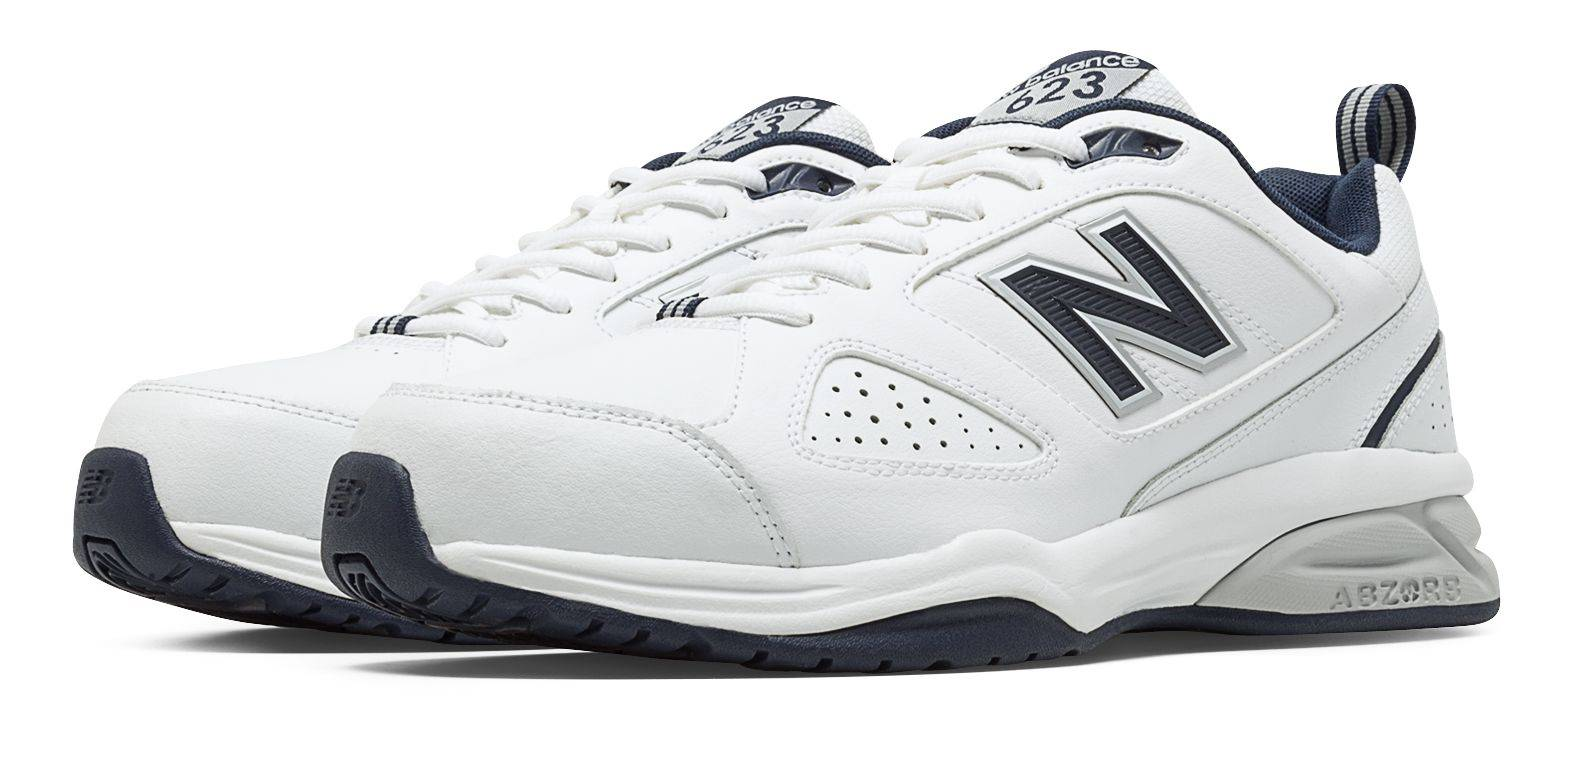 New Balance Men's 623v3 Shoes White with Navy  - White with Navy - Size: 7